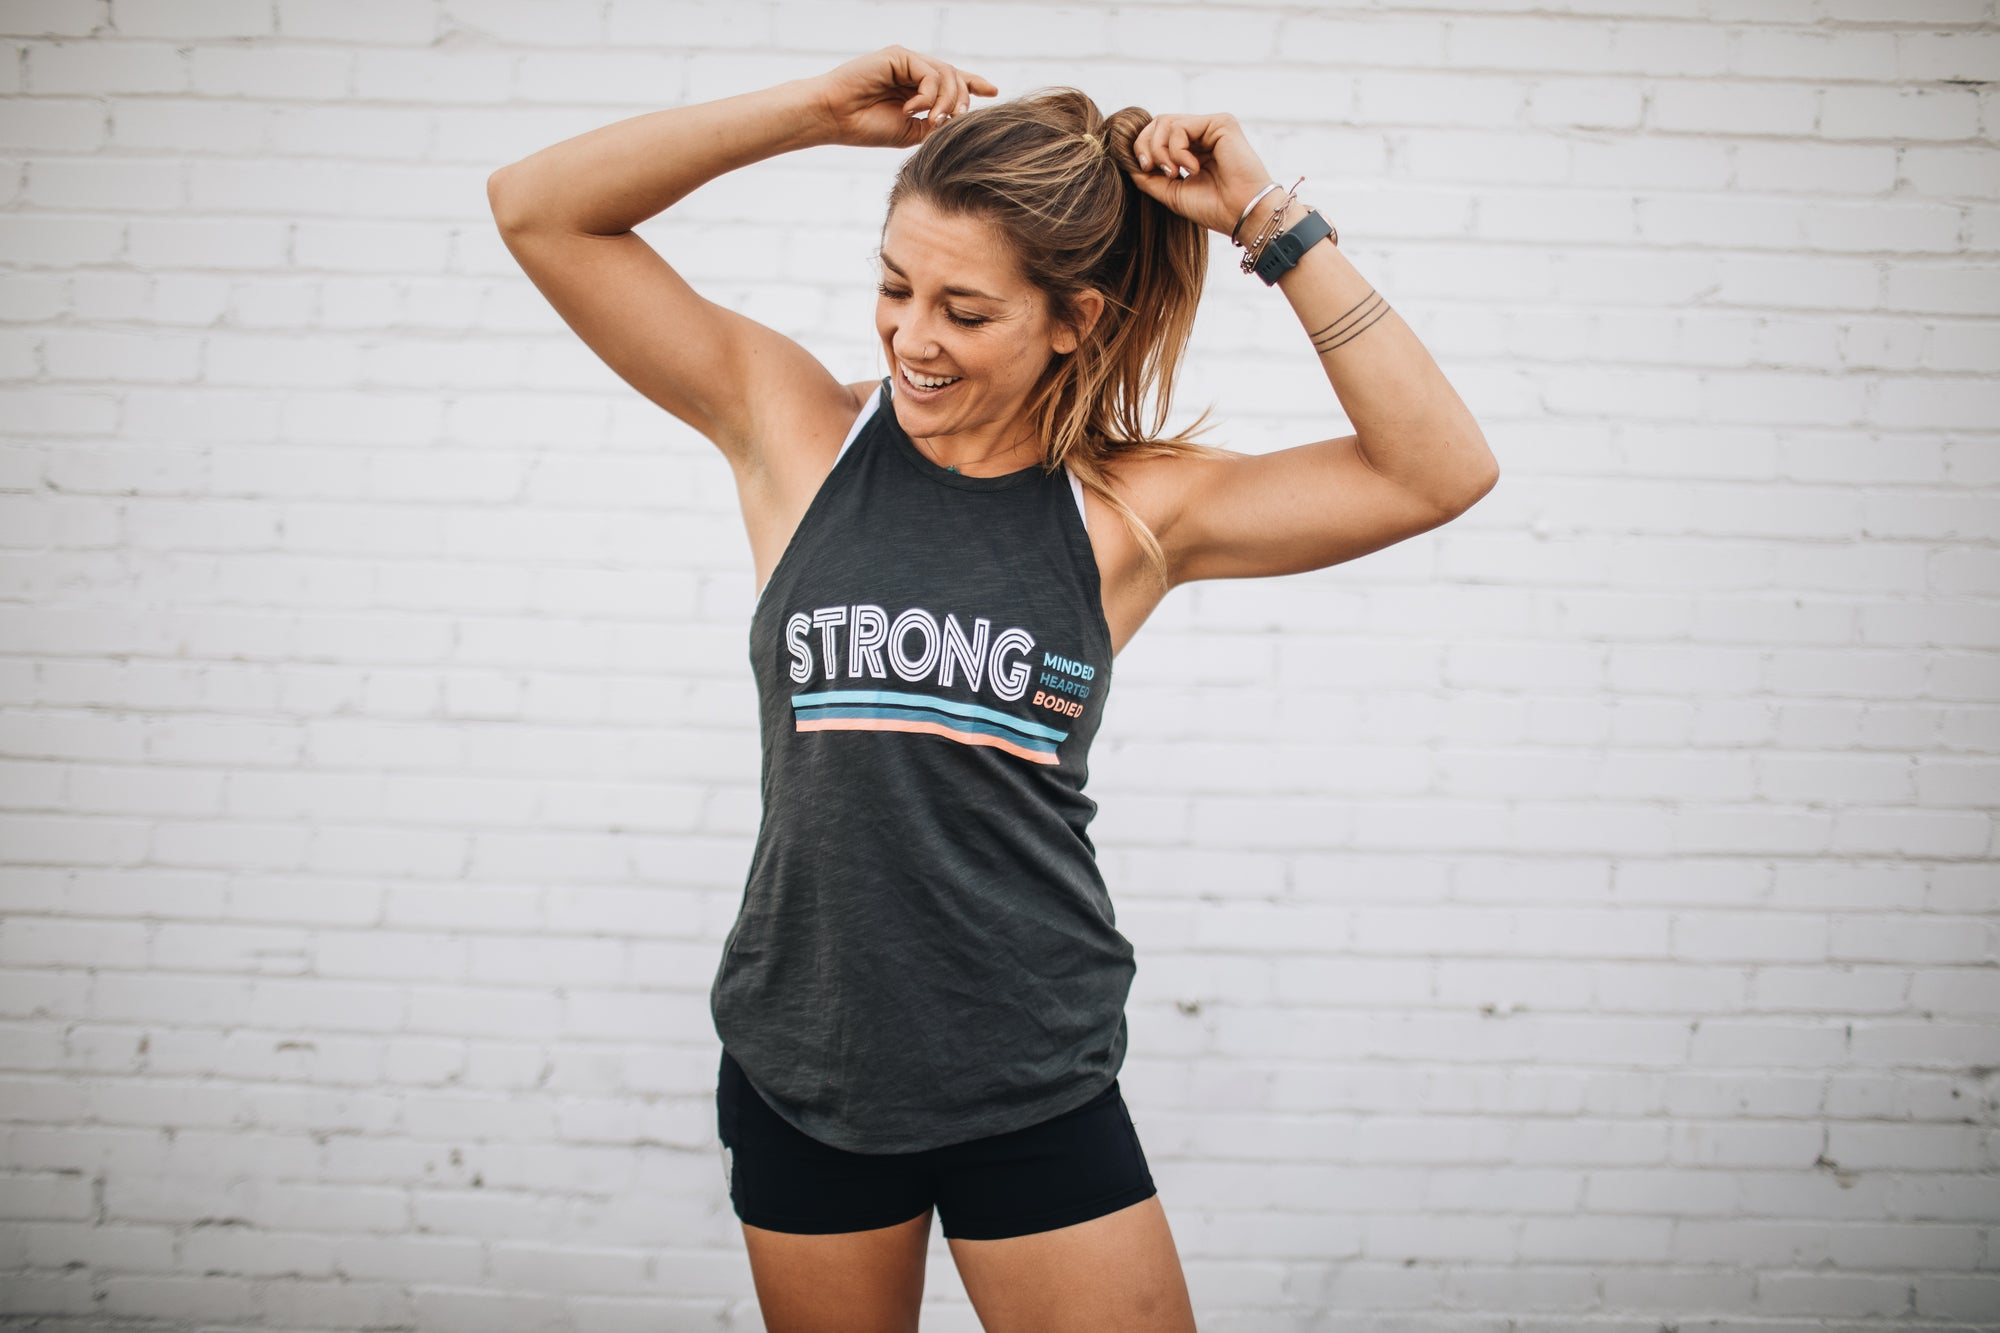 STRONG minded. bodied. hearted. Tank